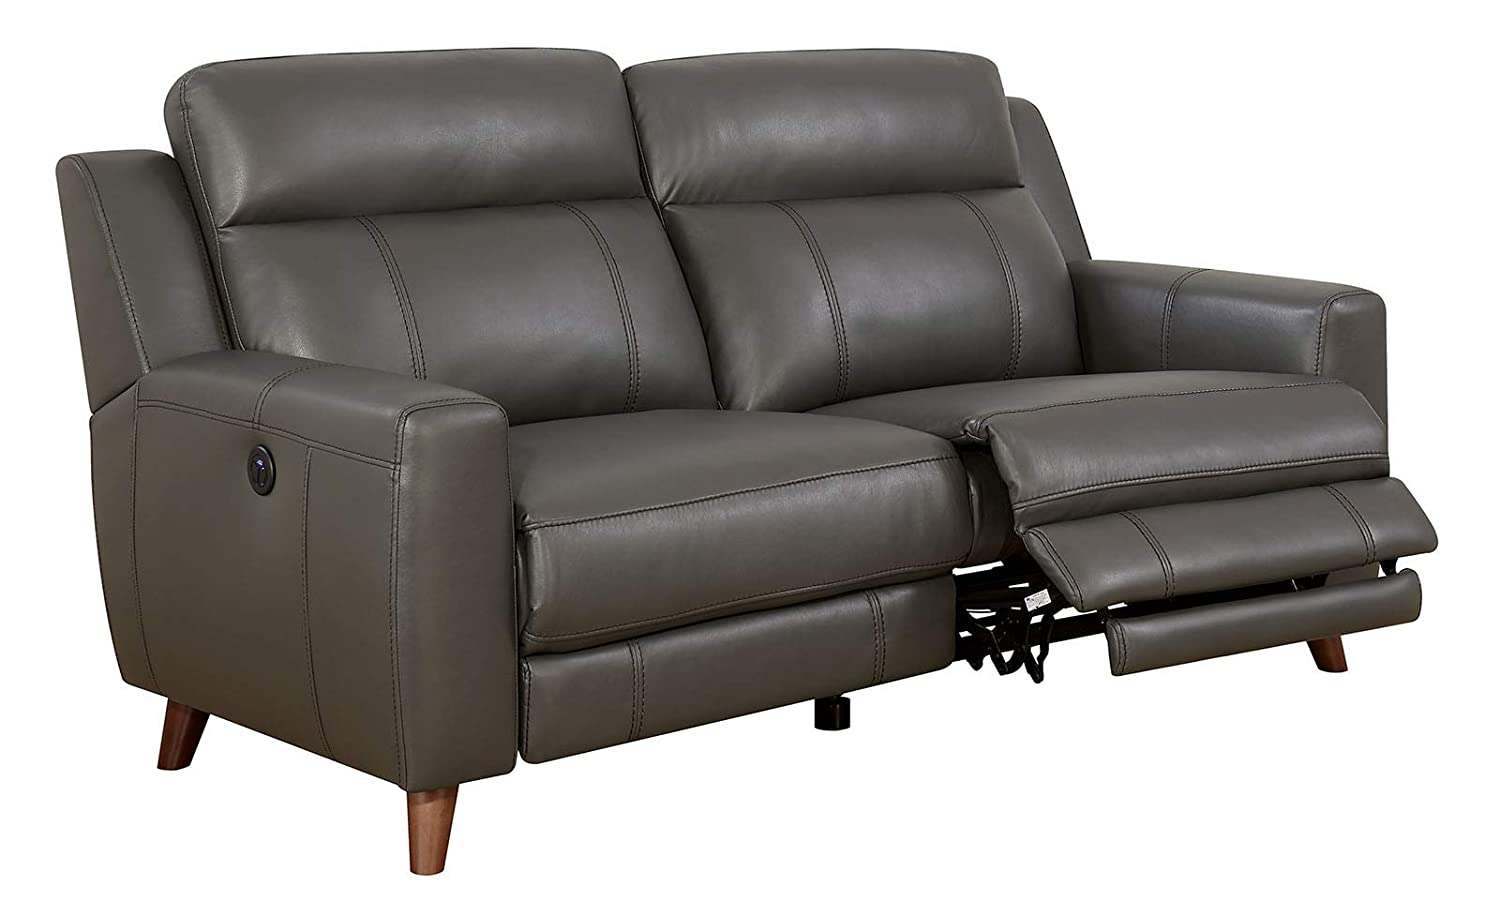 Stupendous Amazon Com Benzara Bm182911 Leatherette Power Recliner Sofa Dailytribune Chair Design For Home Dailytribuneorg